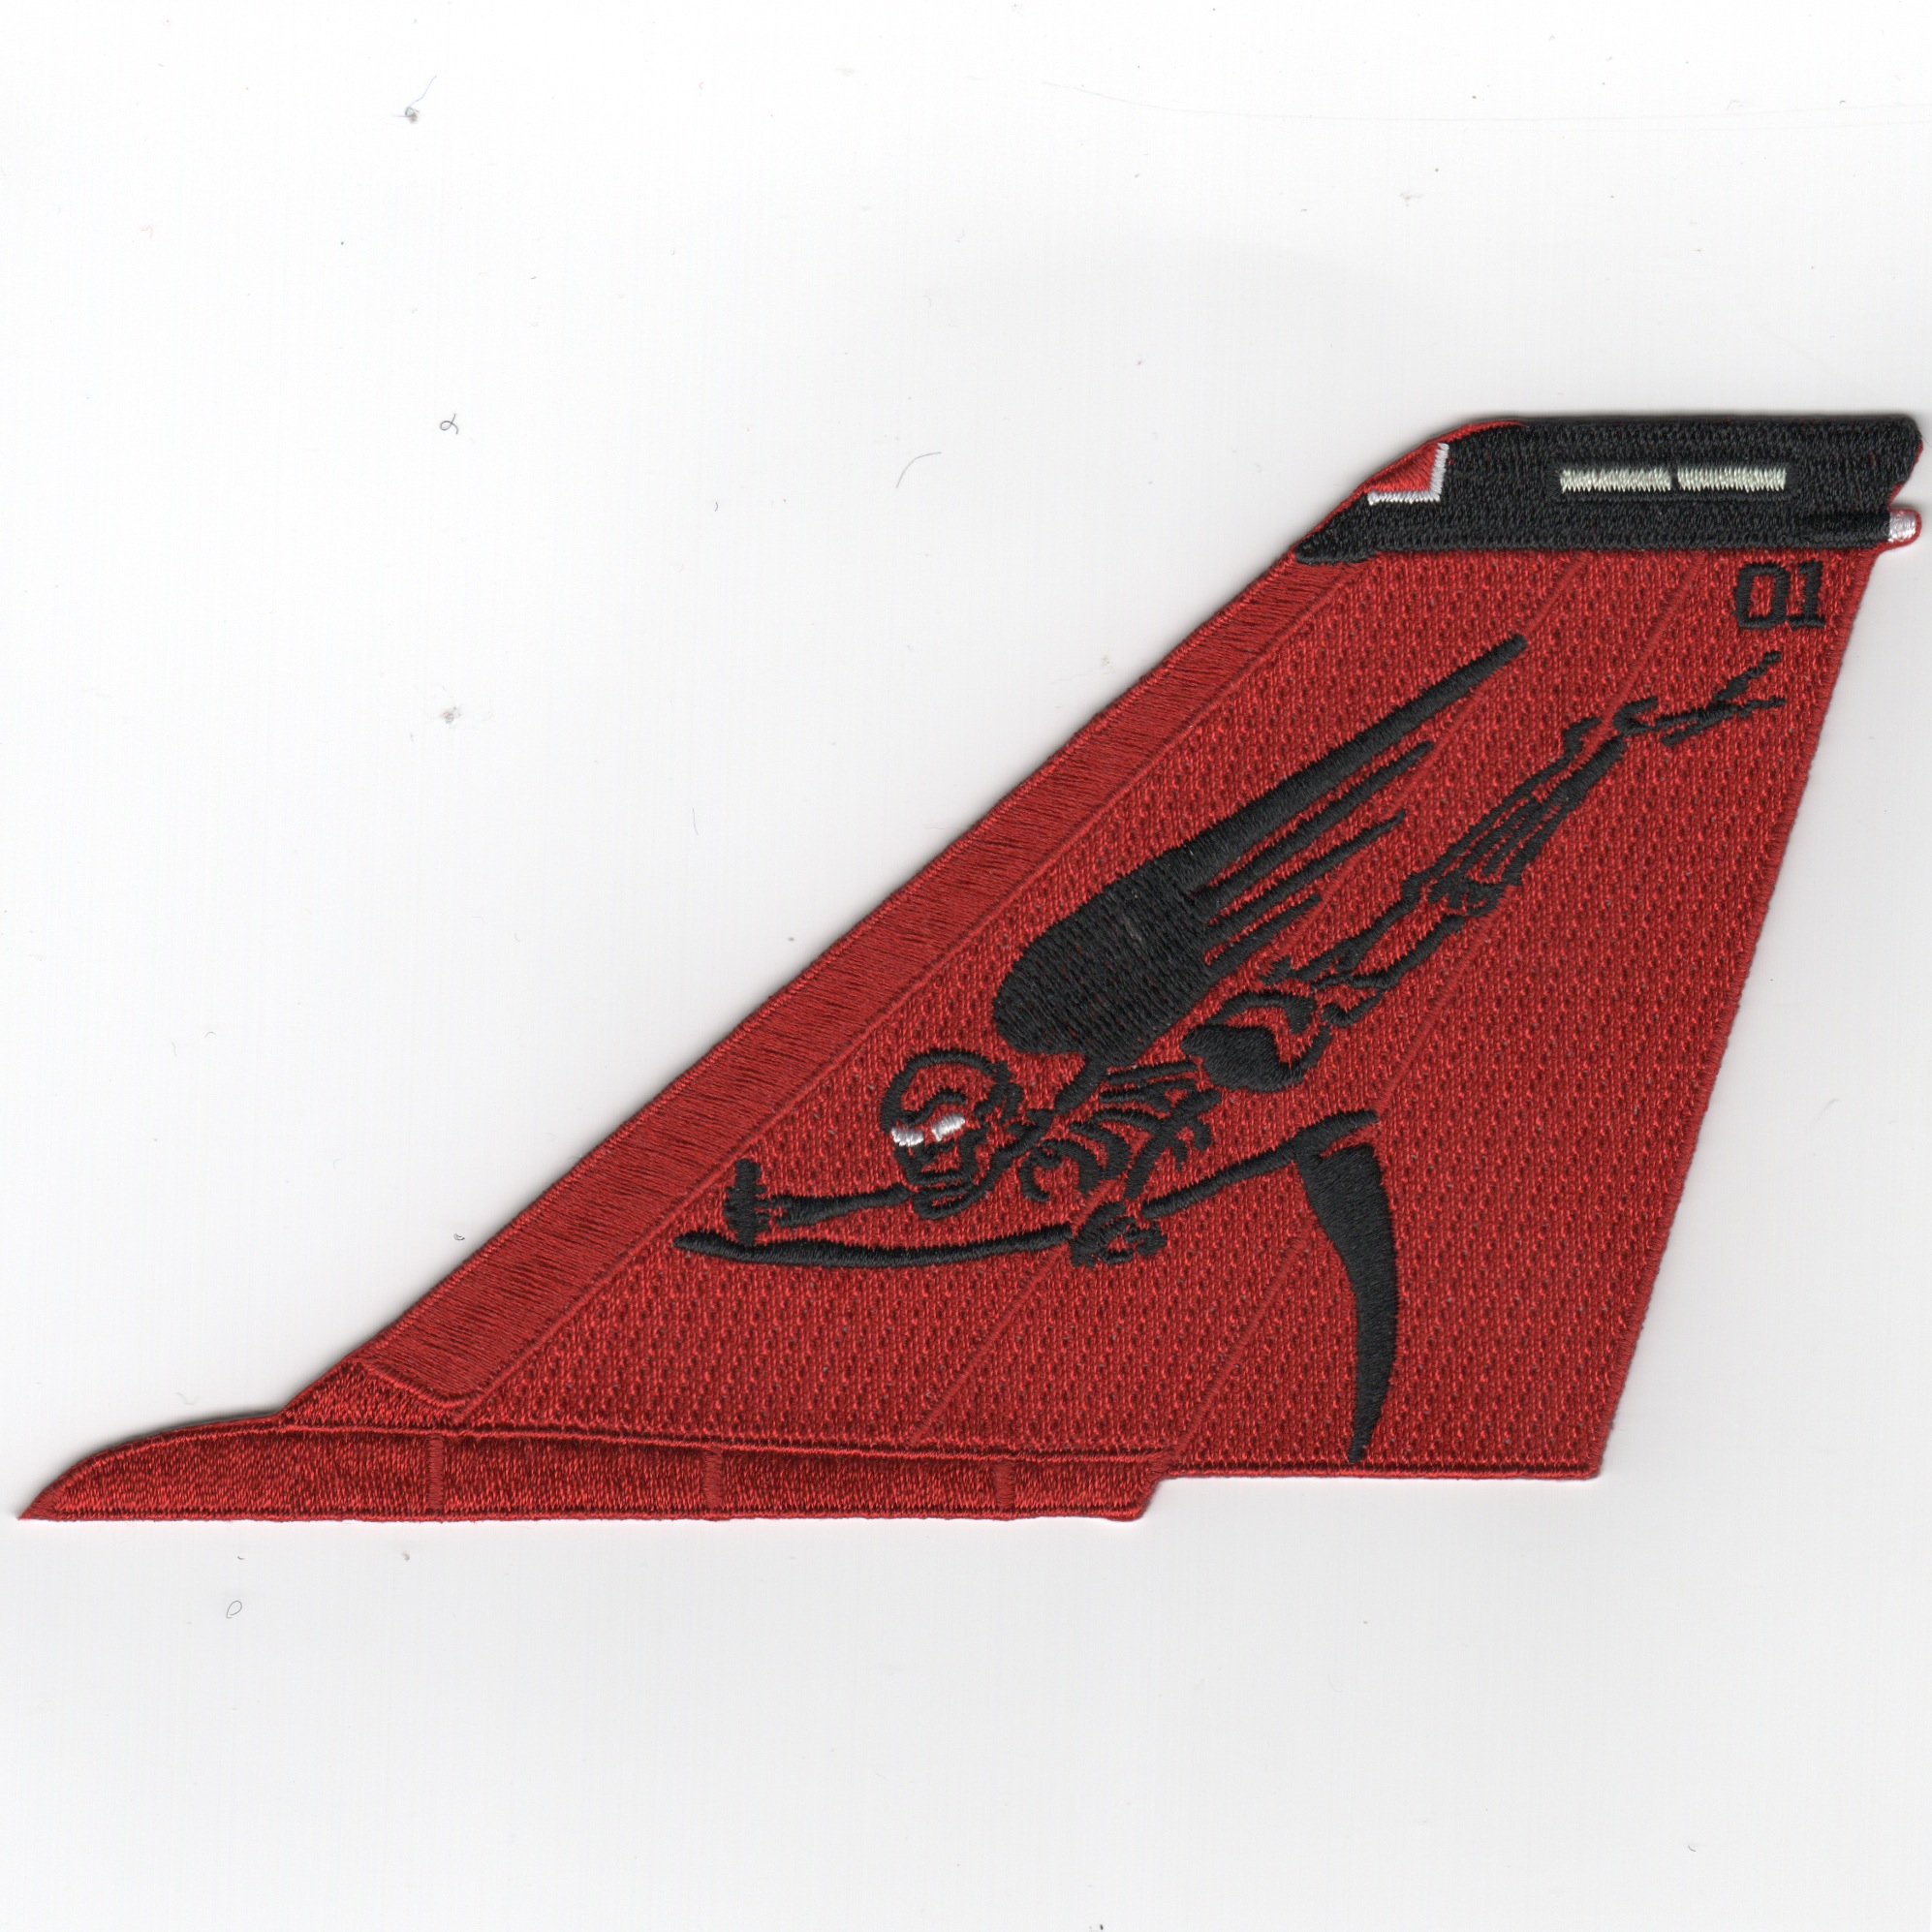 VF-101 F-14 Tail (All Red/Flying Moe/No Text)